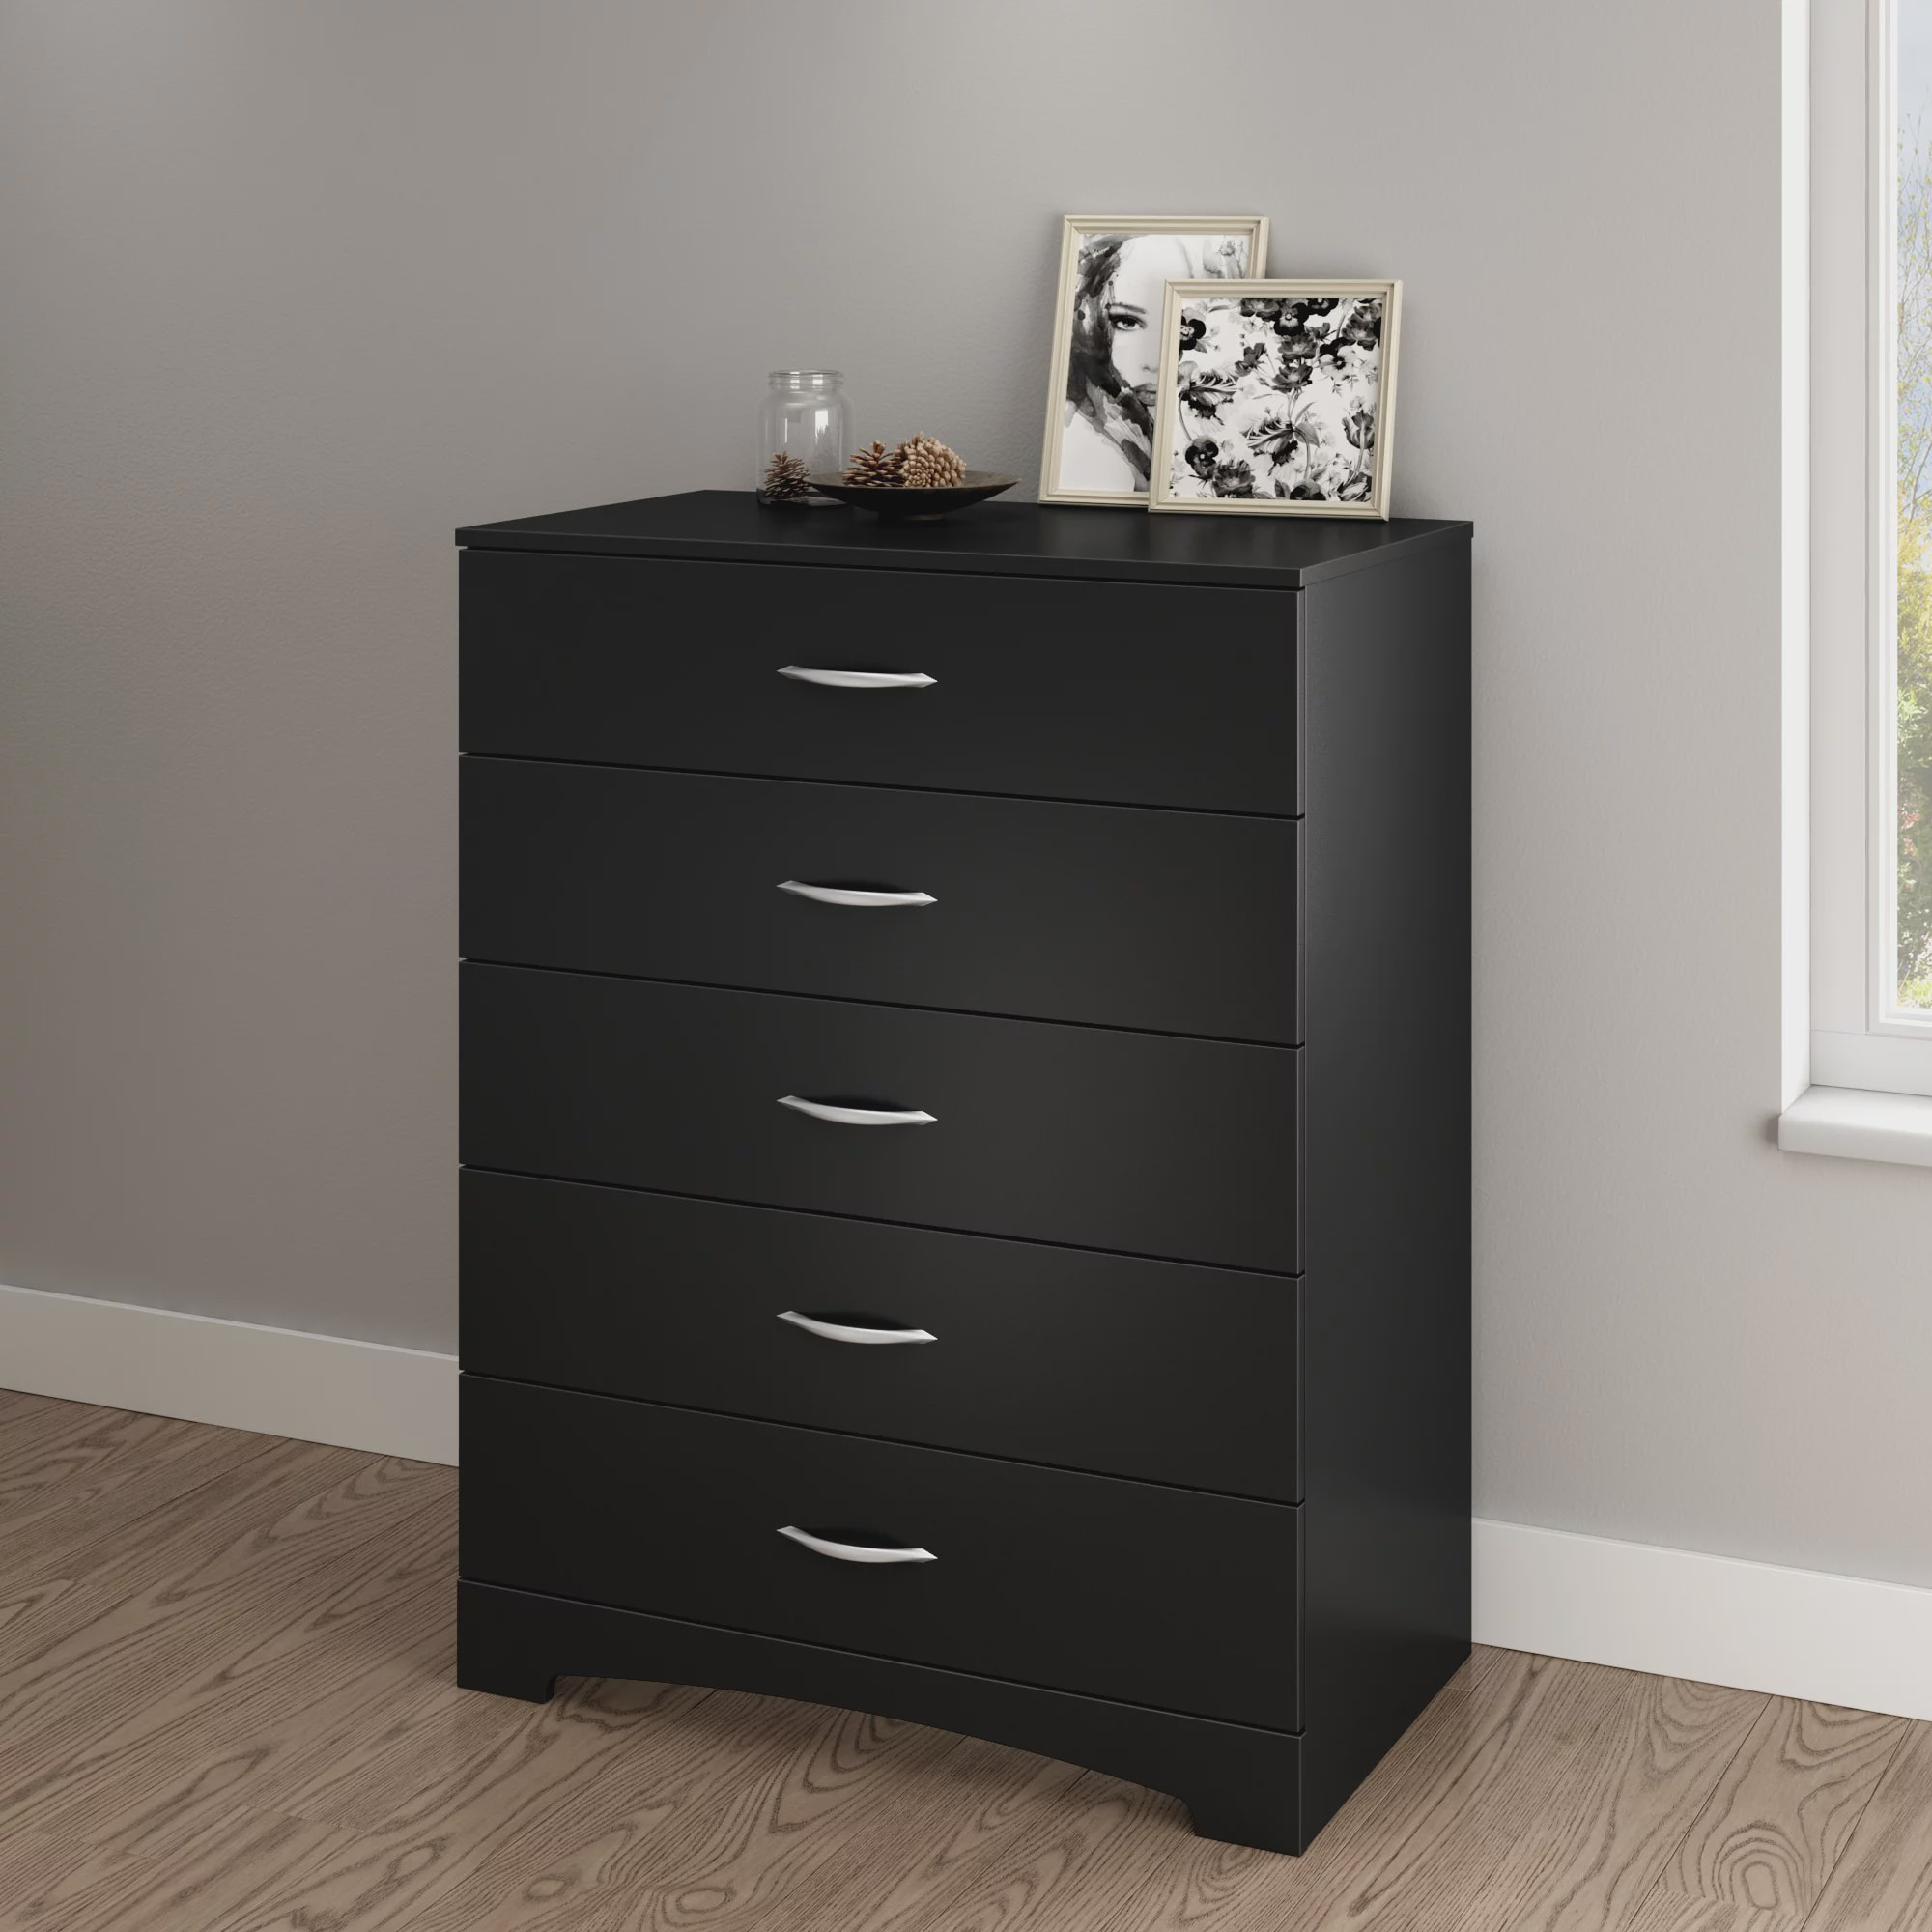 Better Home Products Chest 5 Drawers Black